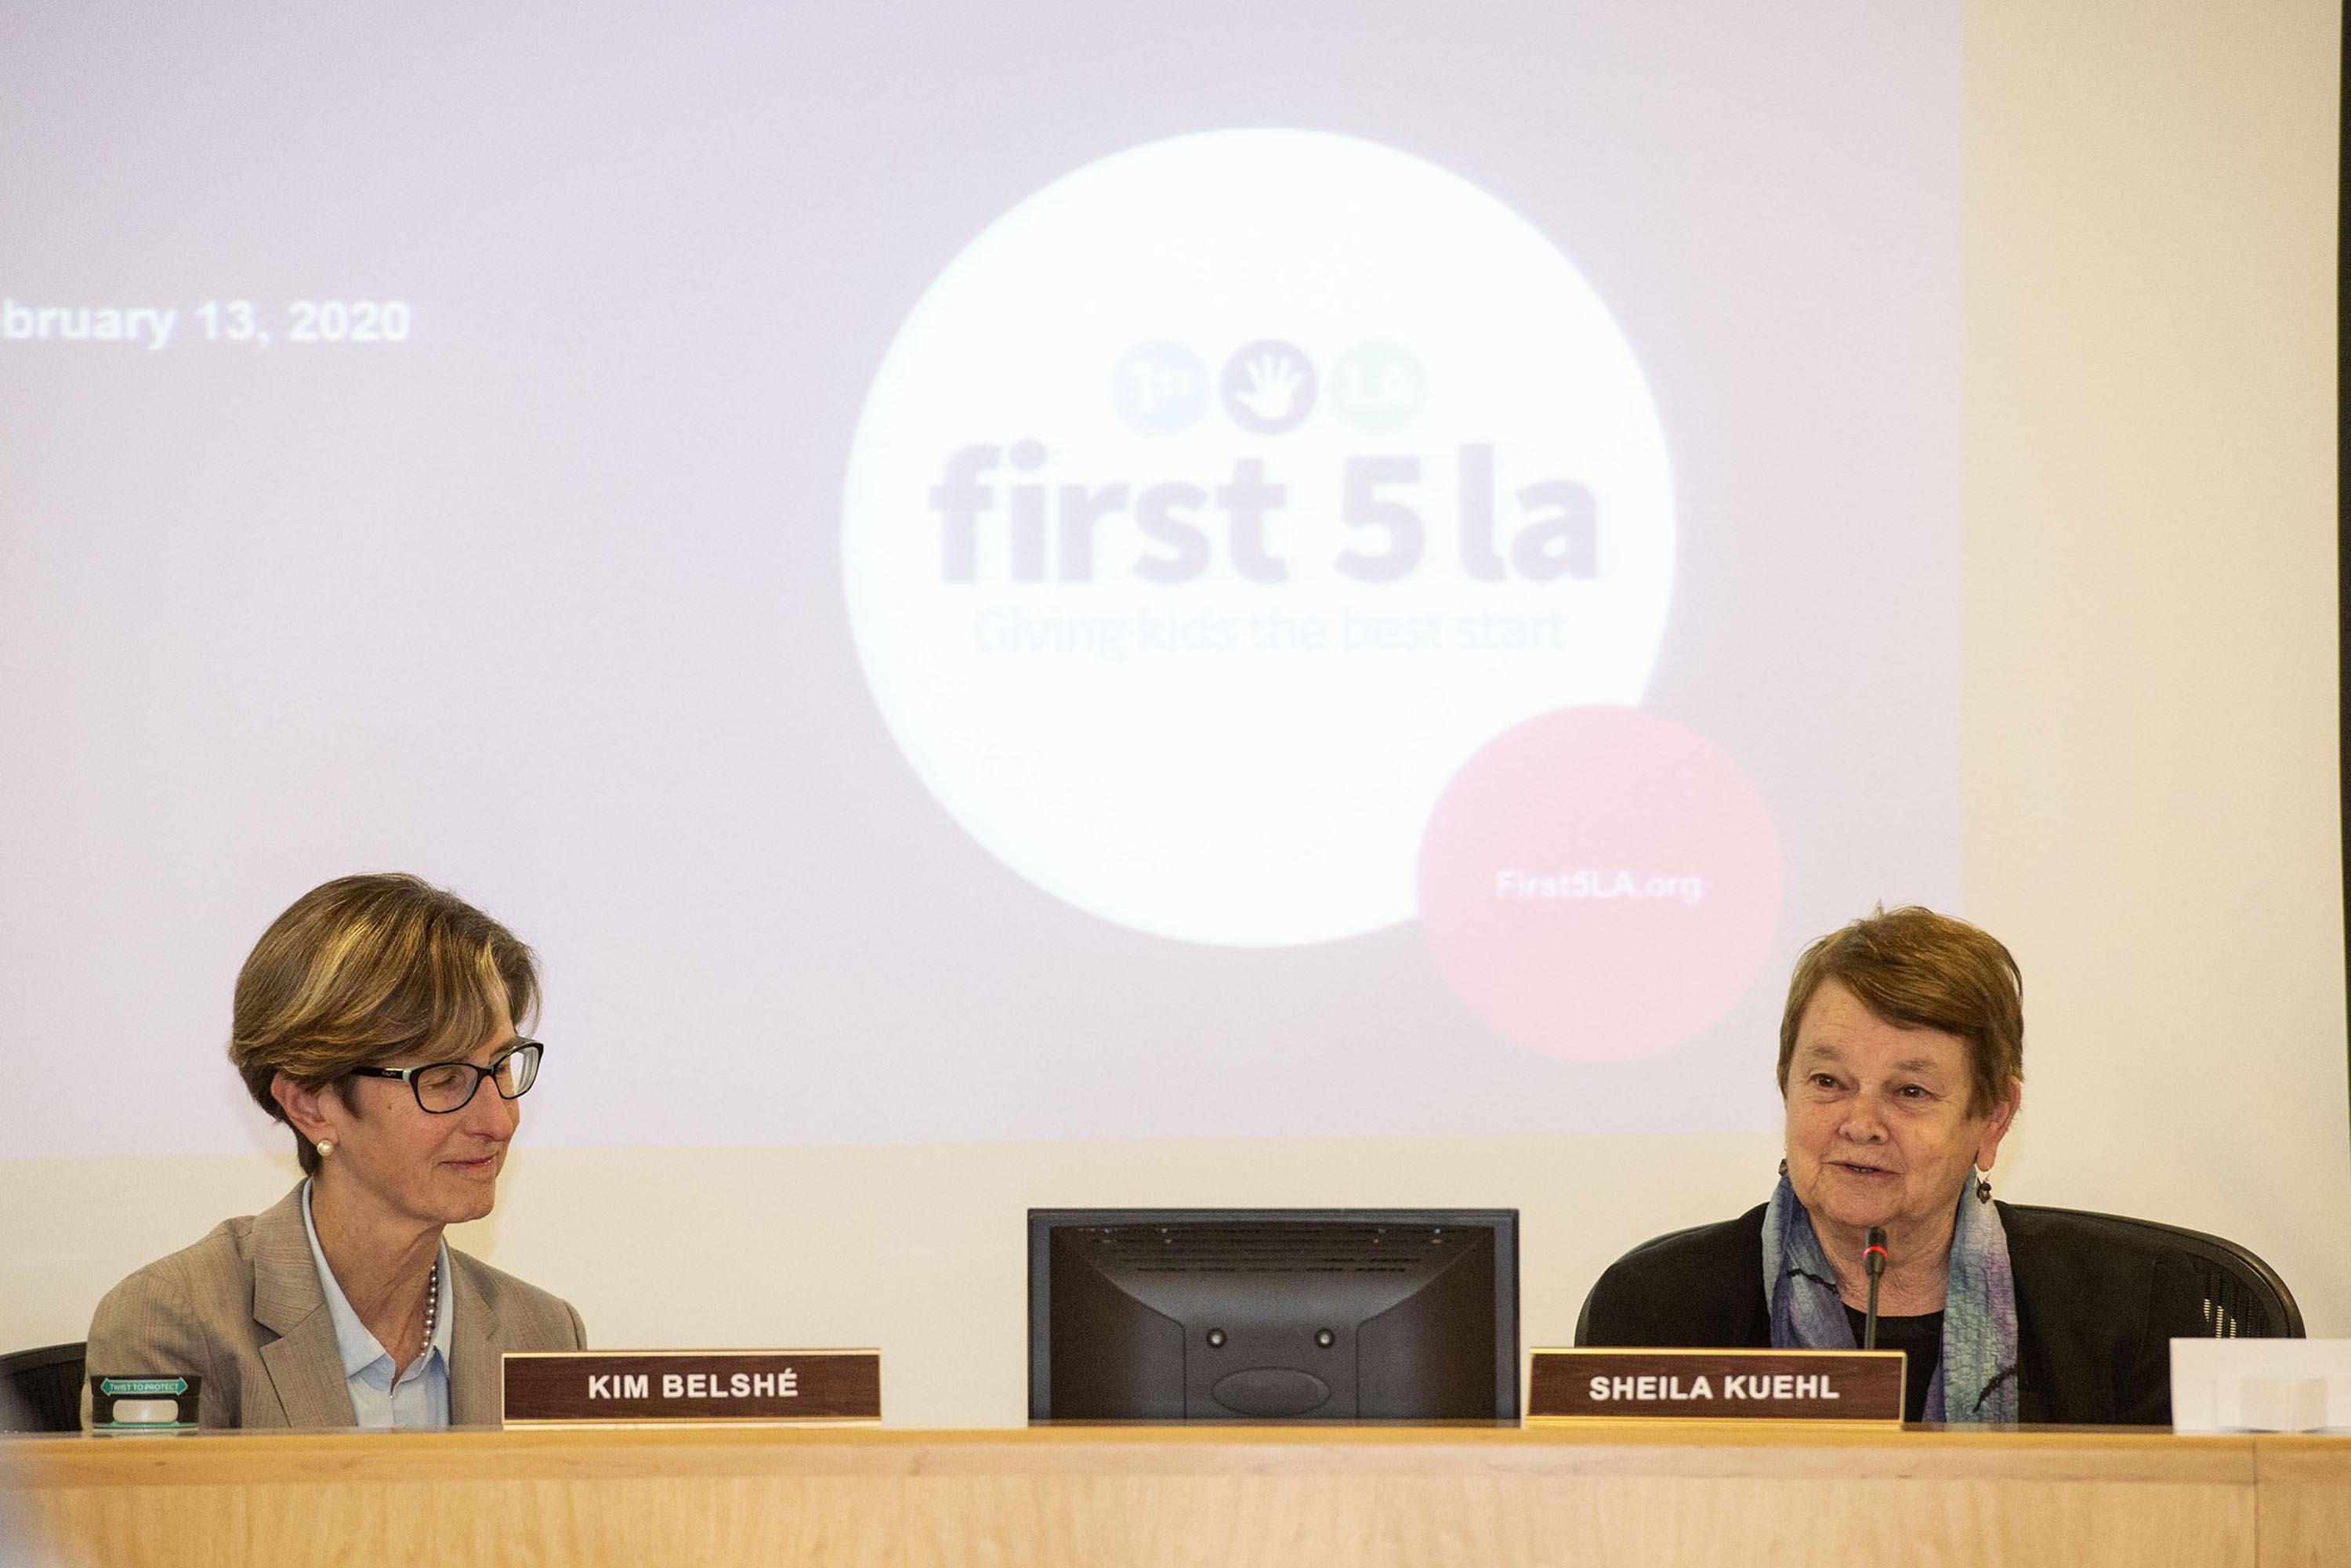 District 3 – Supervisor Sheila Kuehl<br> <b>Feb. 13, 2020 – First 5 LA Meeting of the Board of Commissioners. </b><br> <i>Photo by Karen Quincy Loberg / For the Board of Supervisors</i>